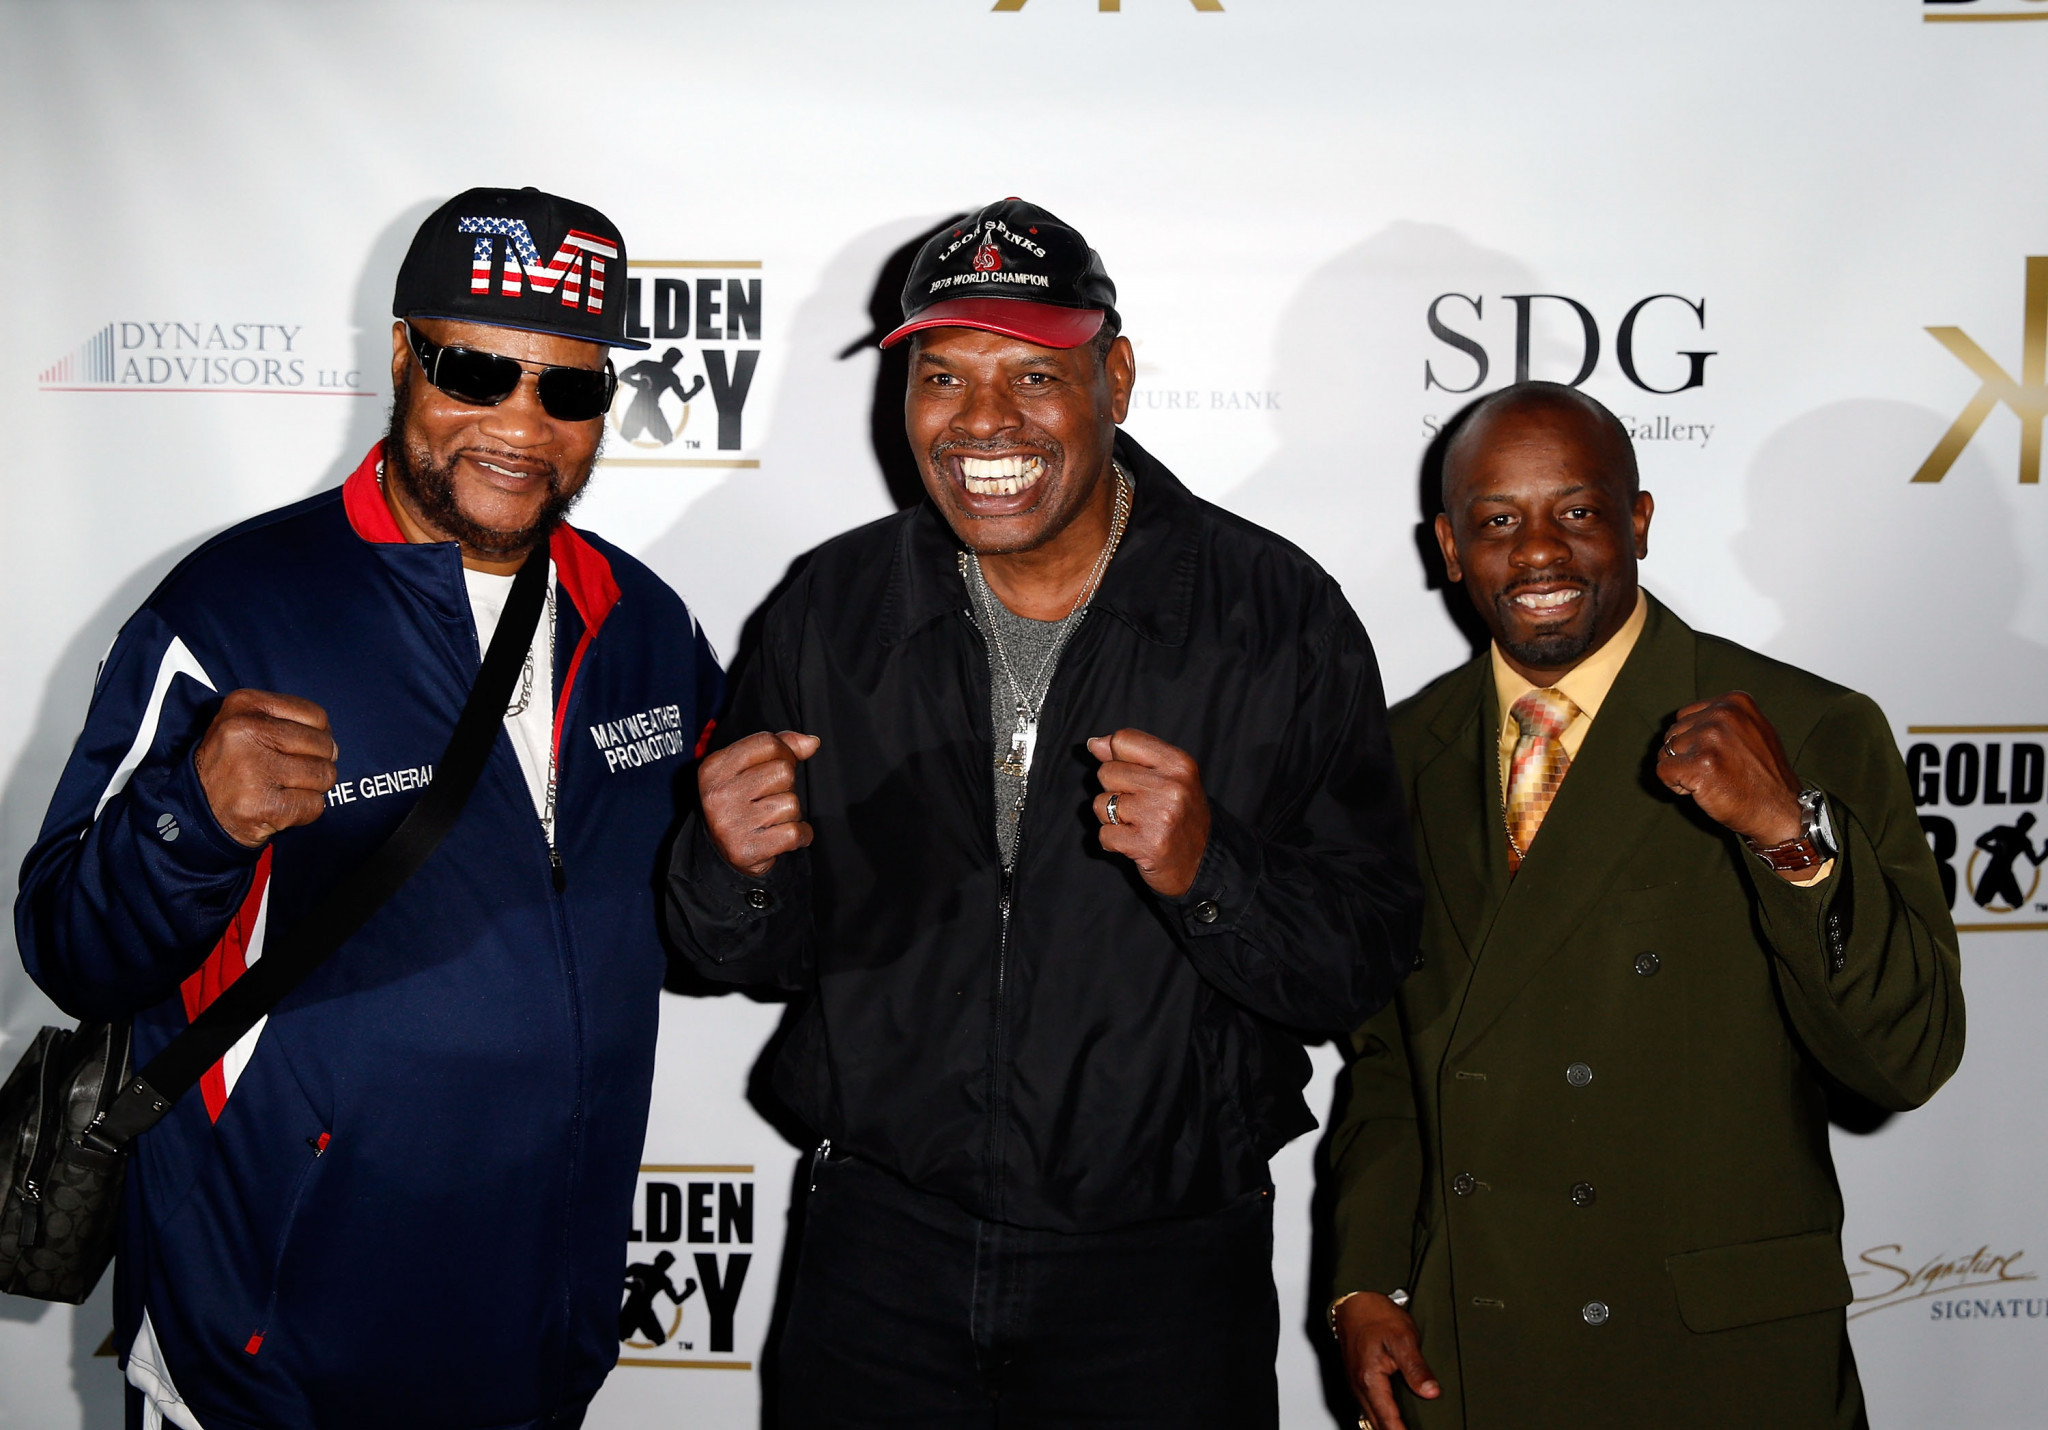 Leon Spinks, centre, was diagnosed with prostate cancer in 2019 ©Getty Images